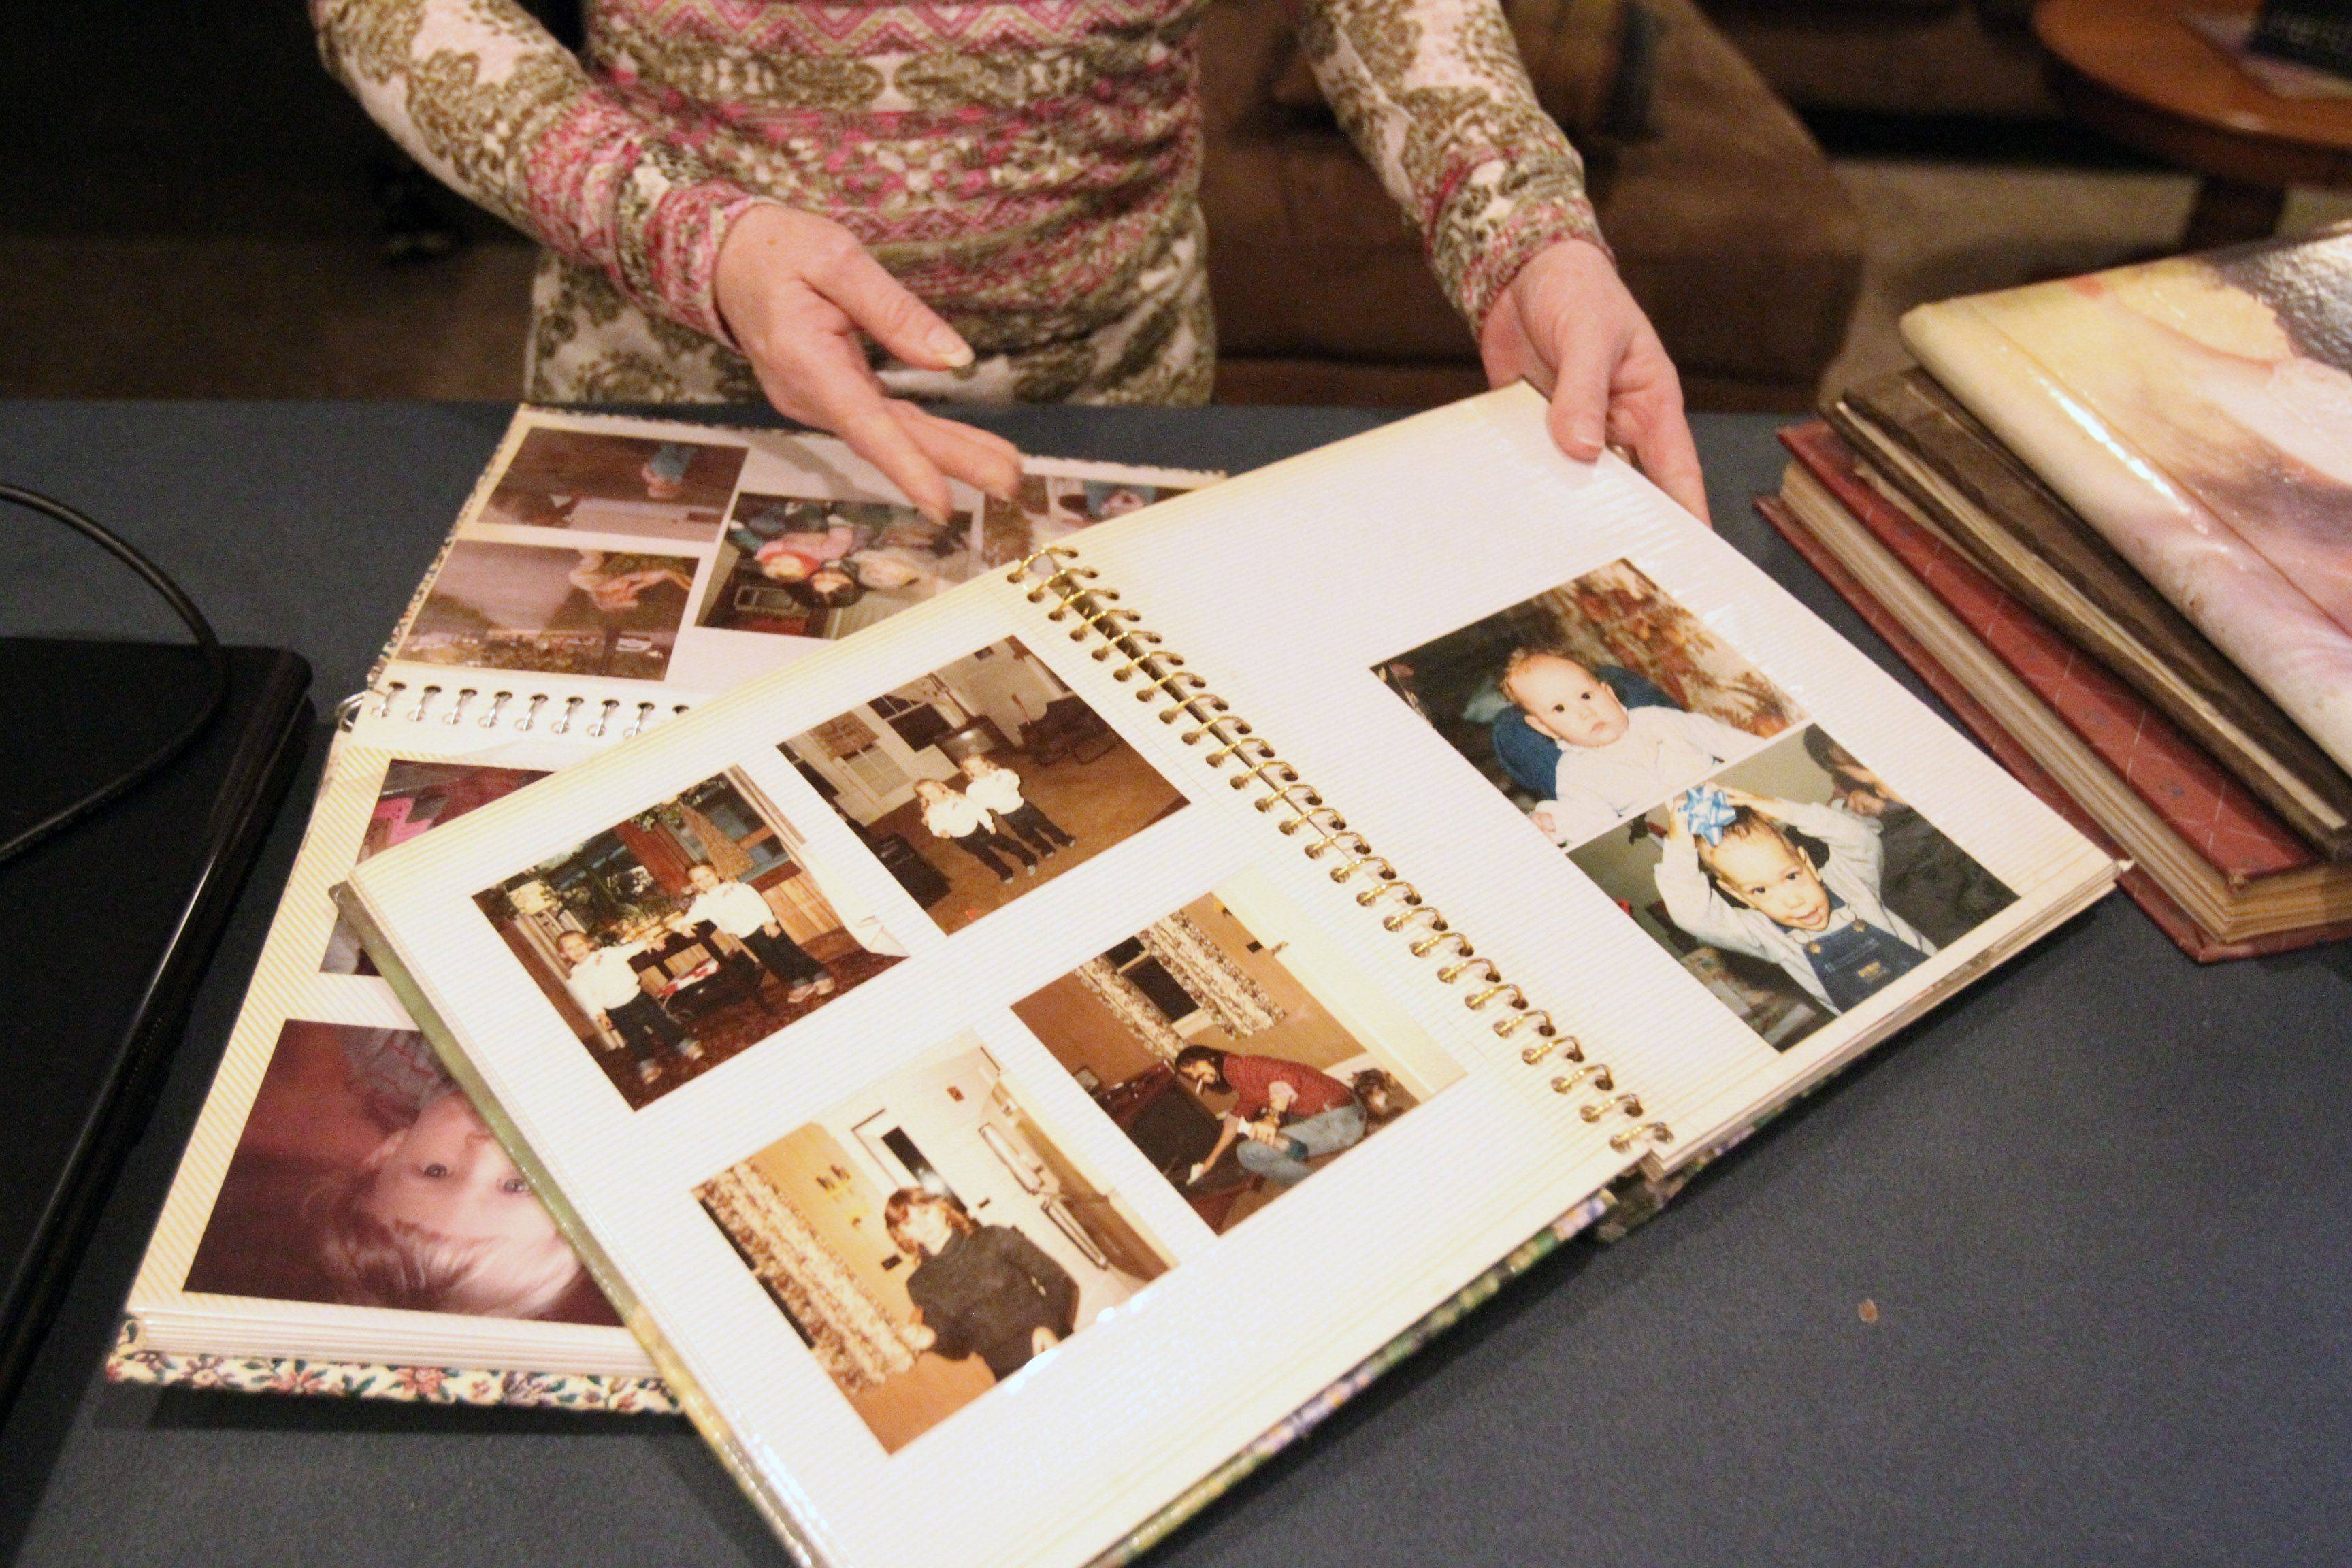 Nancy Kalinowski on Friday shows albums filled with photographs of her daughter, Holly Staker, who was murdered in 1992.